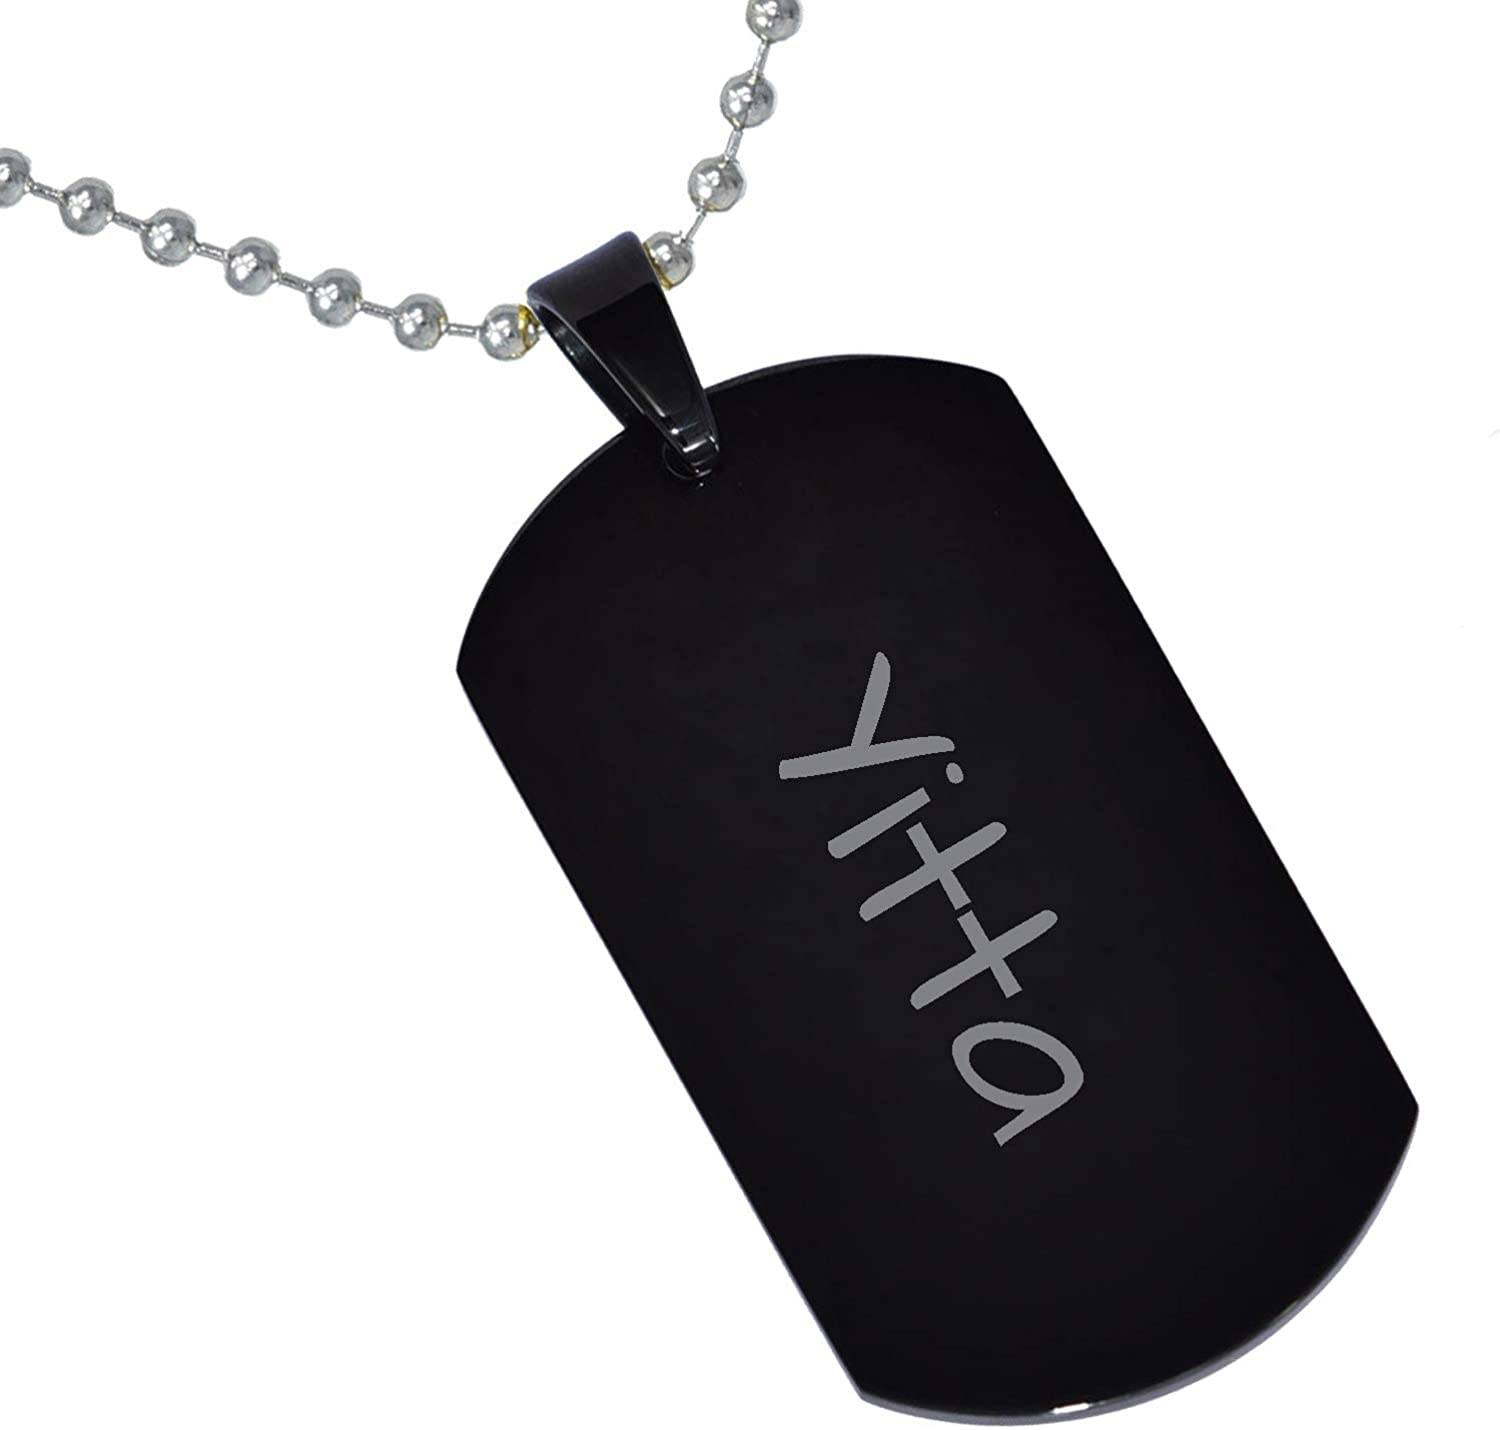 Stainless Steel Silver Gold Black Rose Gold Color Baby Name Yitta Engraved Personalized Gifts For Son Daughter Boyfriend Girlfriend Initial Customizable Pendant Necklace Dog Tags 24 Ball Chain